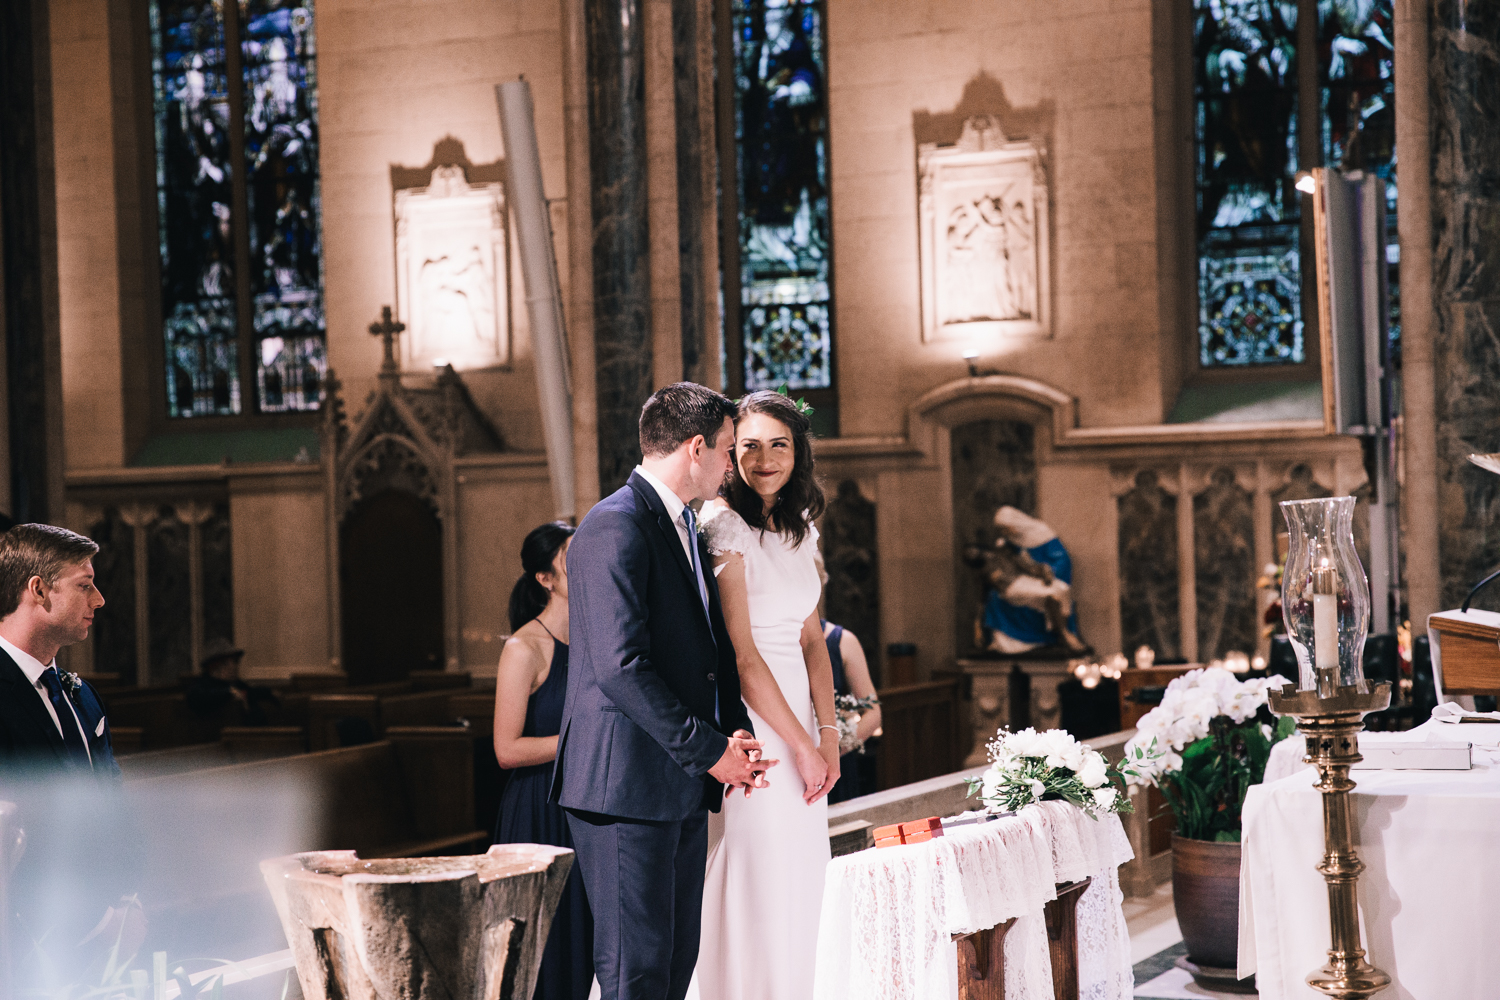 2019.06.01 Ana + Richard SF Wedding Blog Photos -3612.jpg